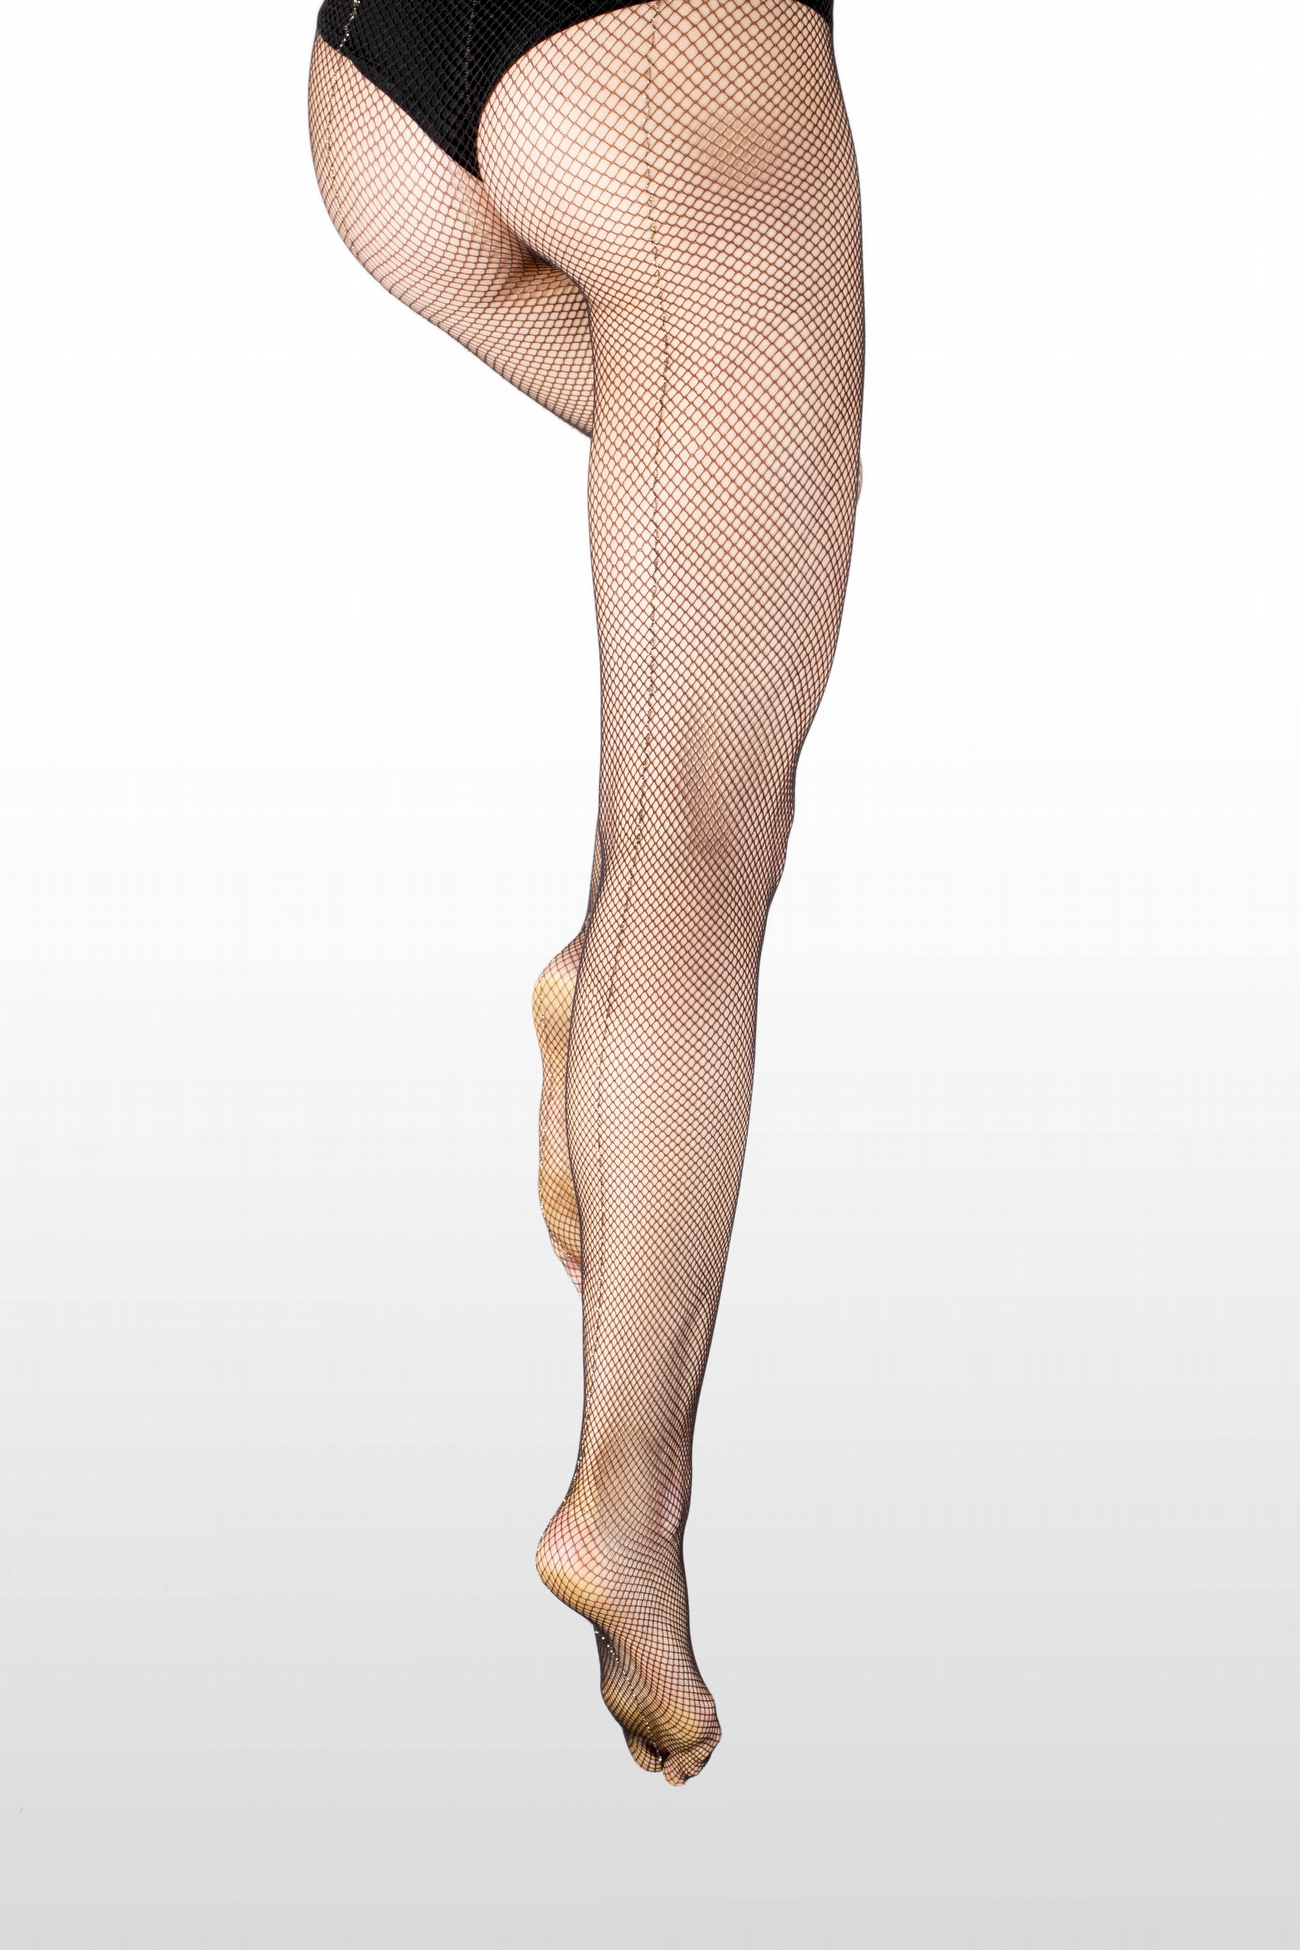 21763e8078011 Buy online Tights SONIA made in Italy